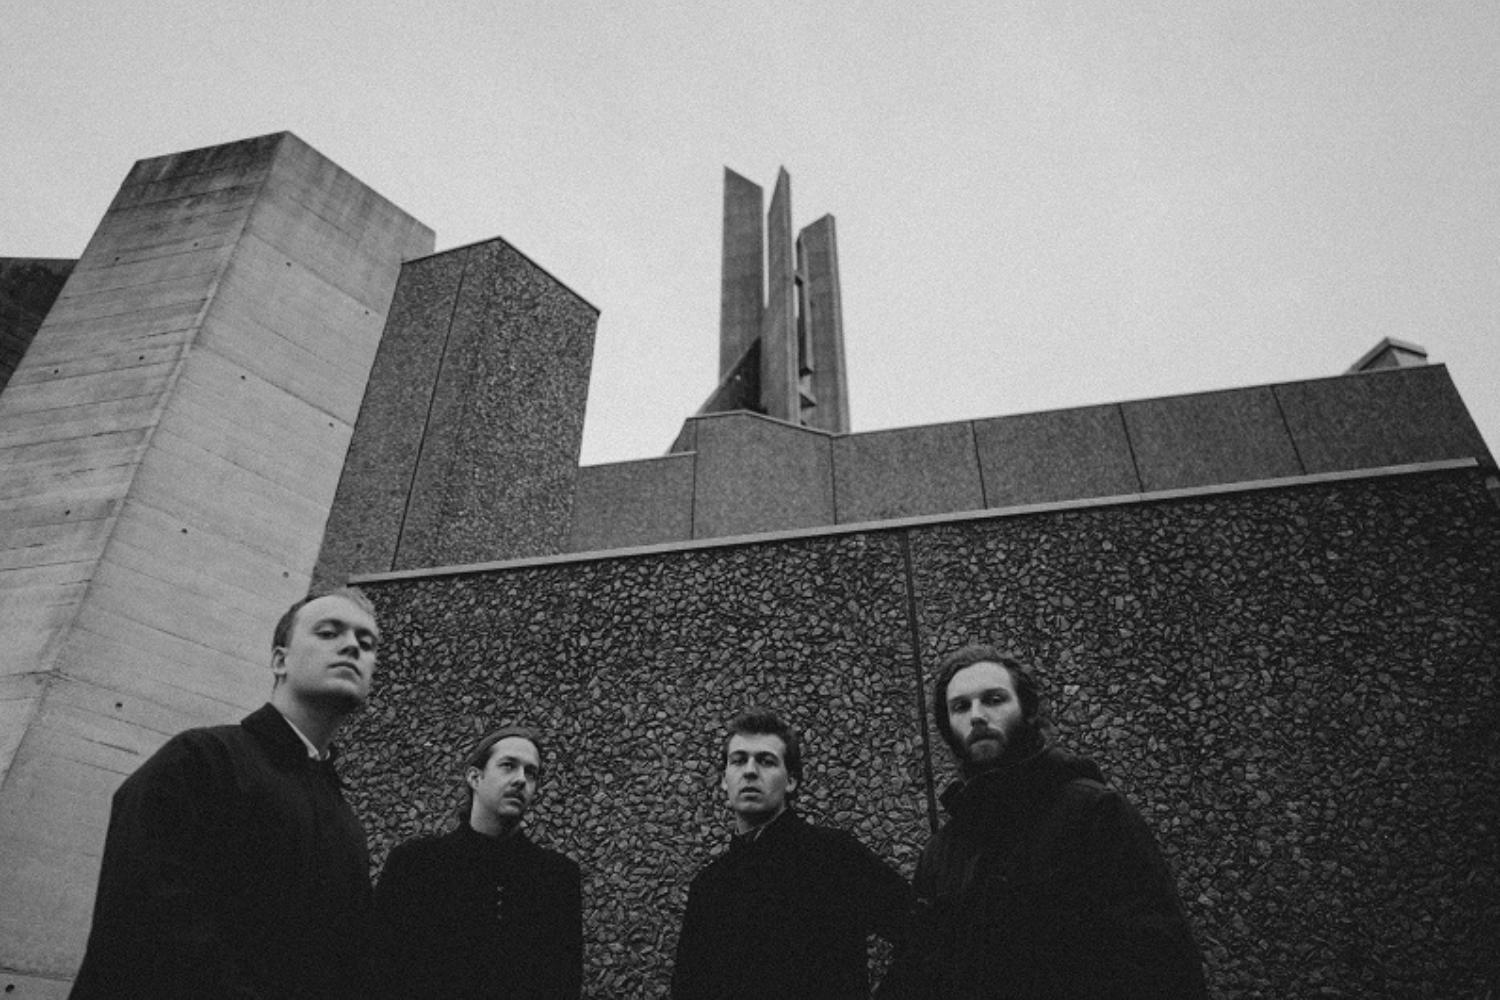 LICE offer up new track 'Arbiter'